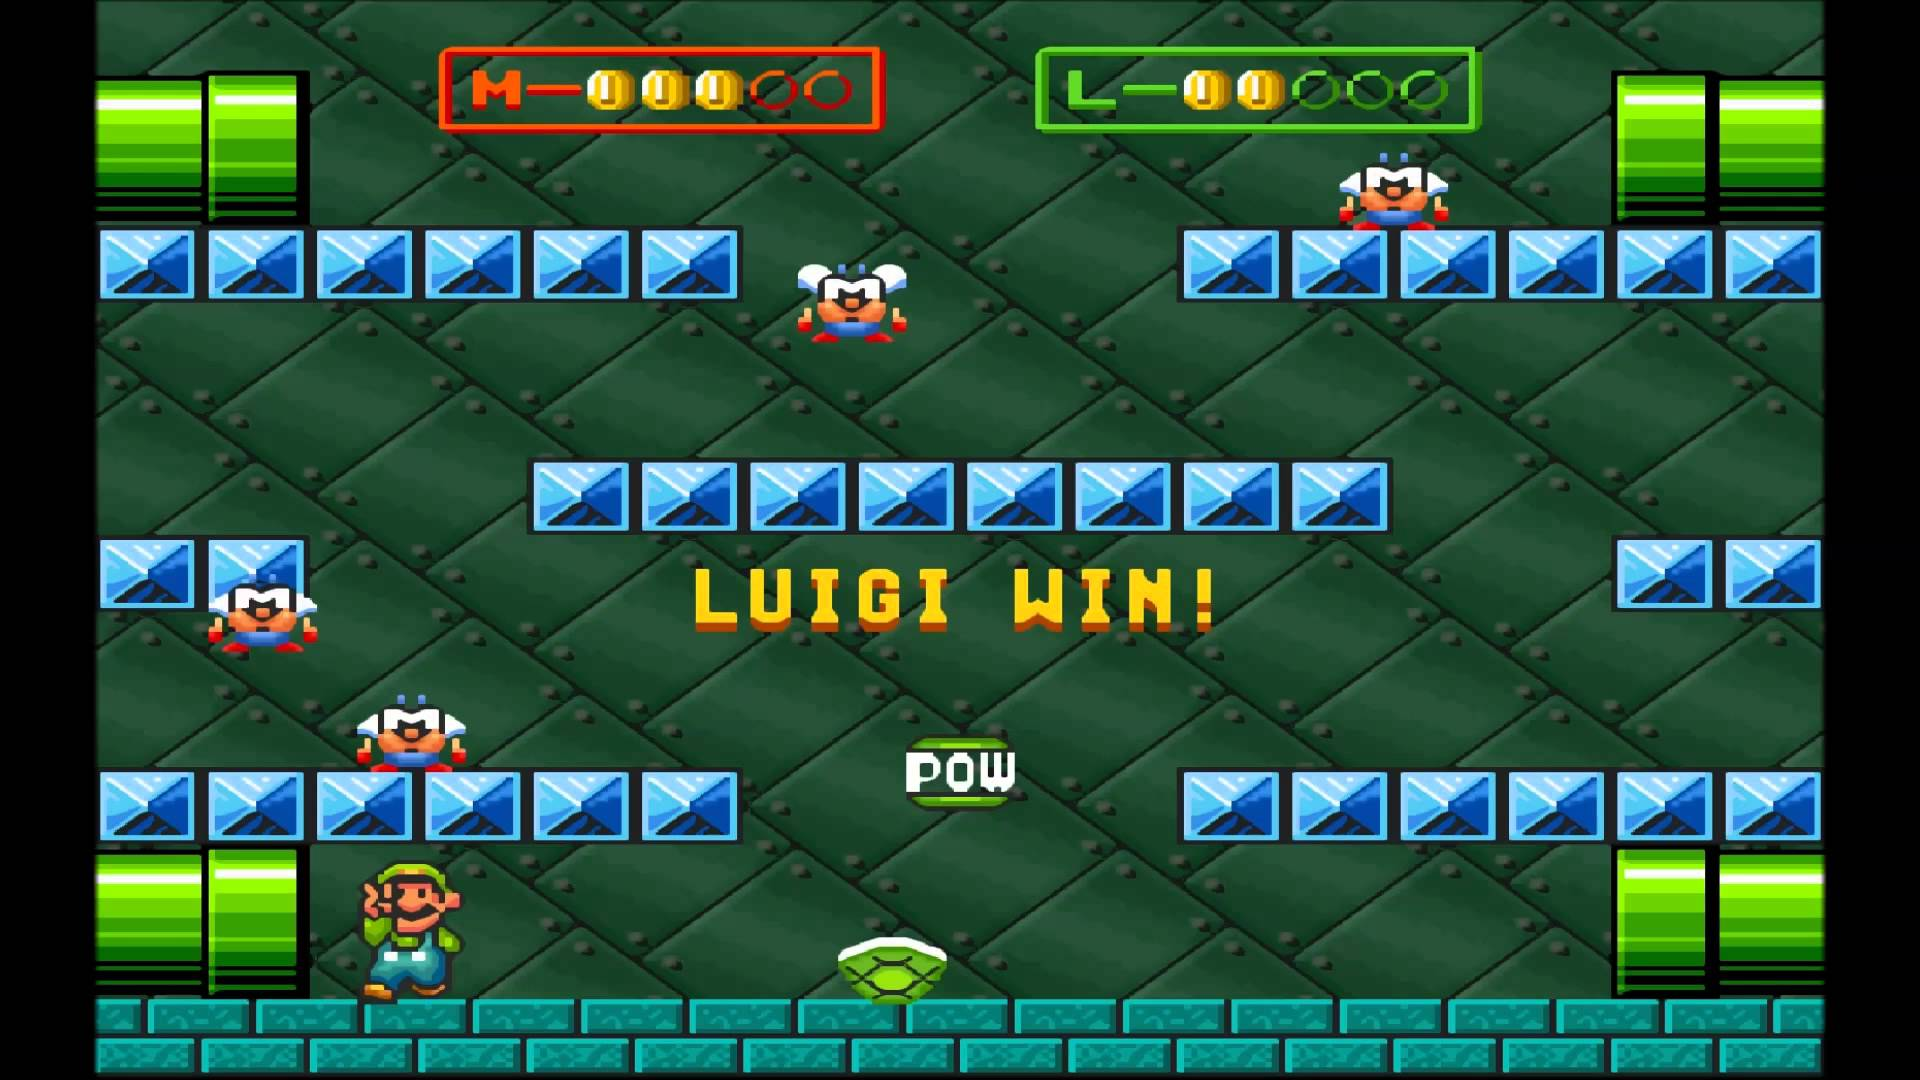 smb 3 battle mode